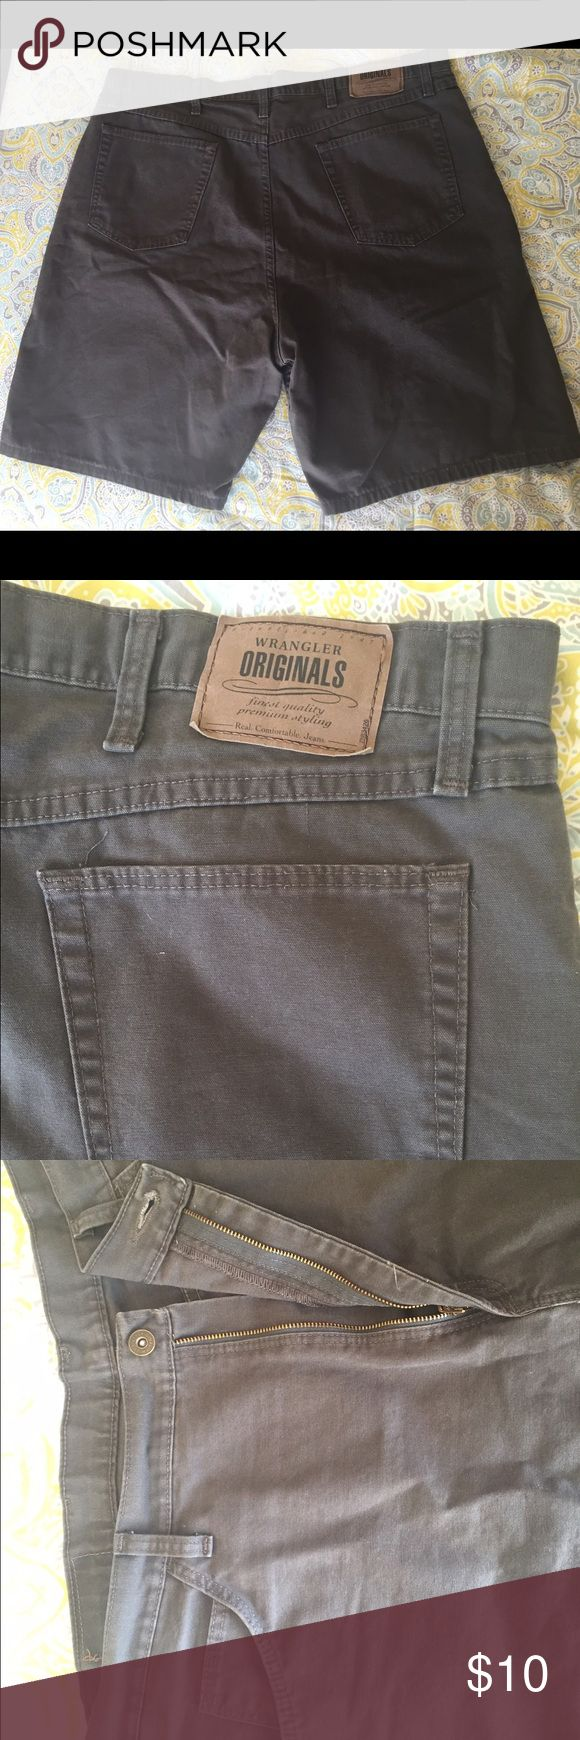 Wrangler Originals dark brown shorts for men Wrangler Originals shorts for men. Dark brown. Relaxed fit. Size 40. 5 pocket. Very good condition. Wrangler Shorts Flat Front